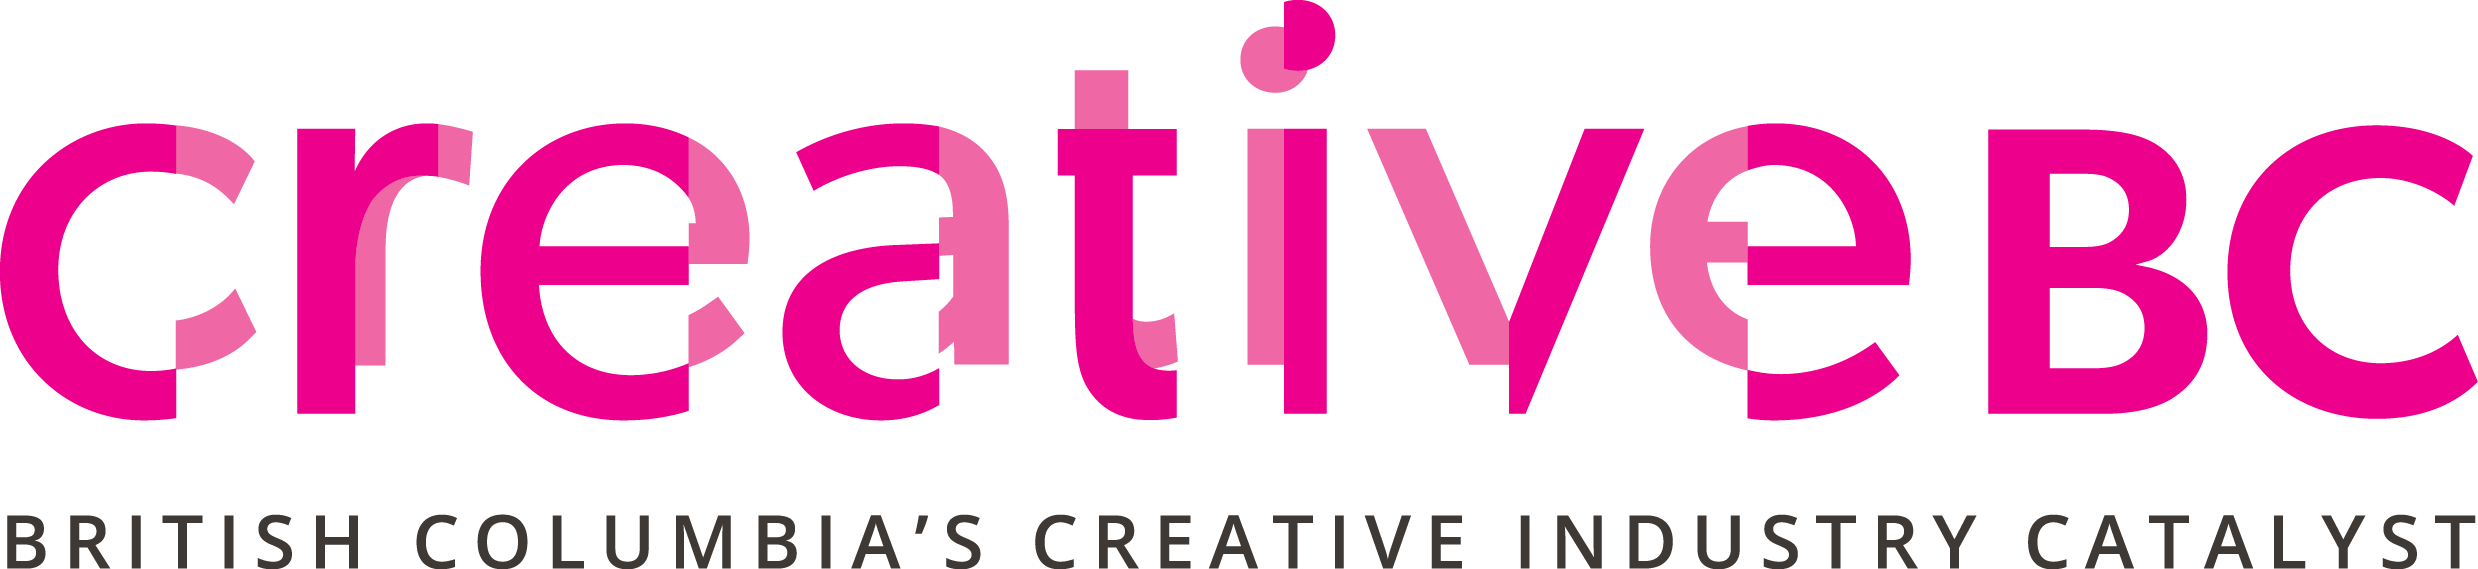 Creative BC: British Columbia's Creative Industry Catalyst